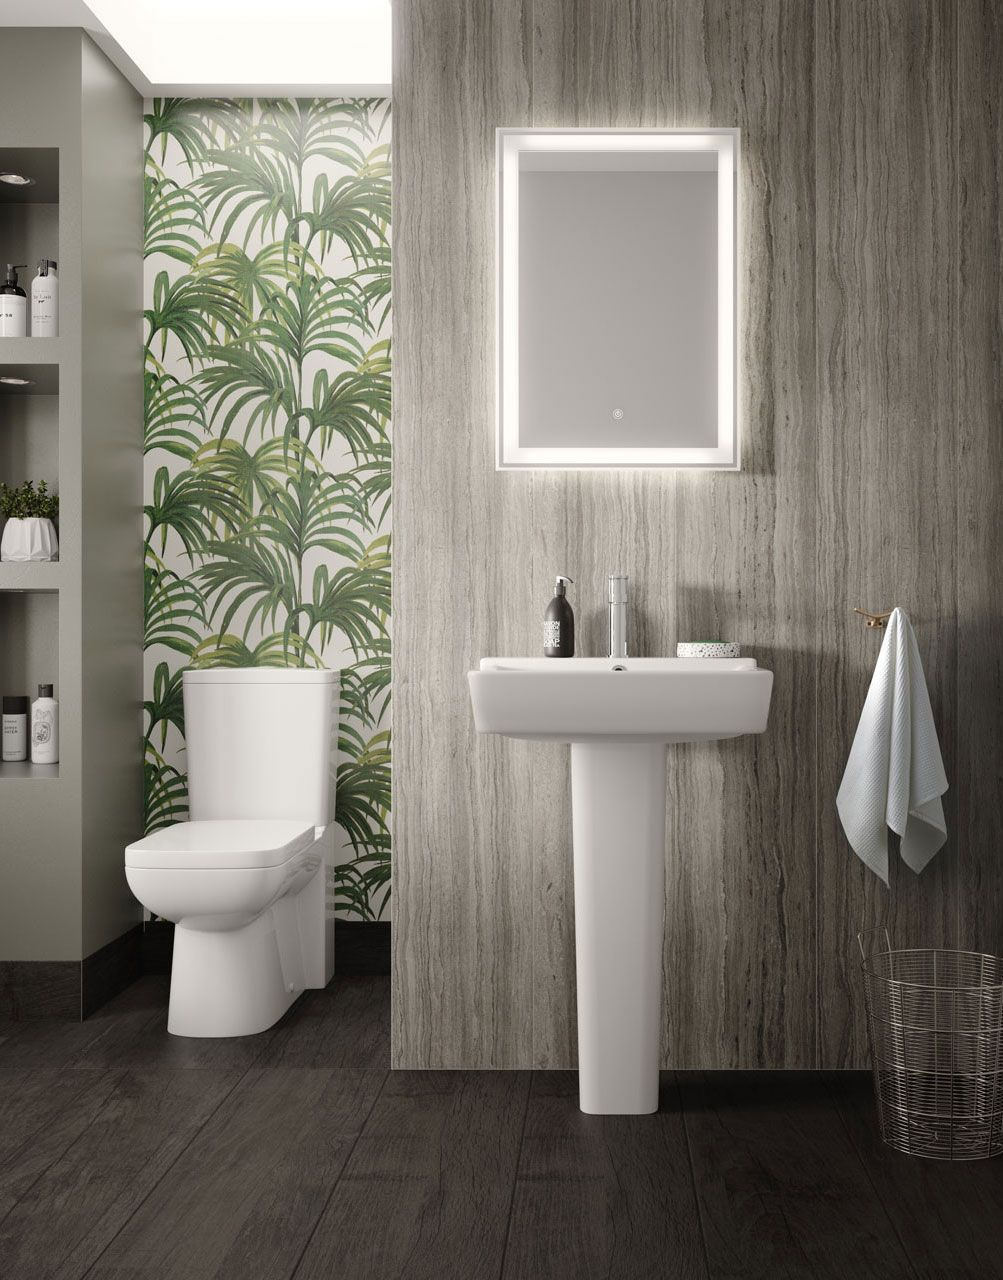 Combine Wood Effect Wall Panels With Bold Patterned Wall Paper For